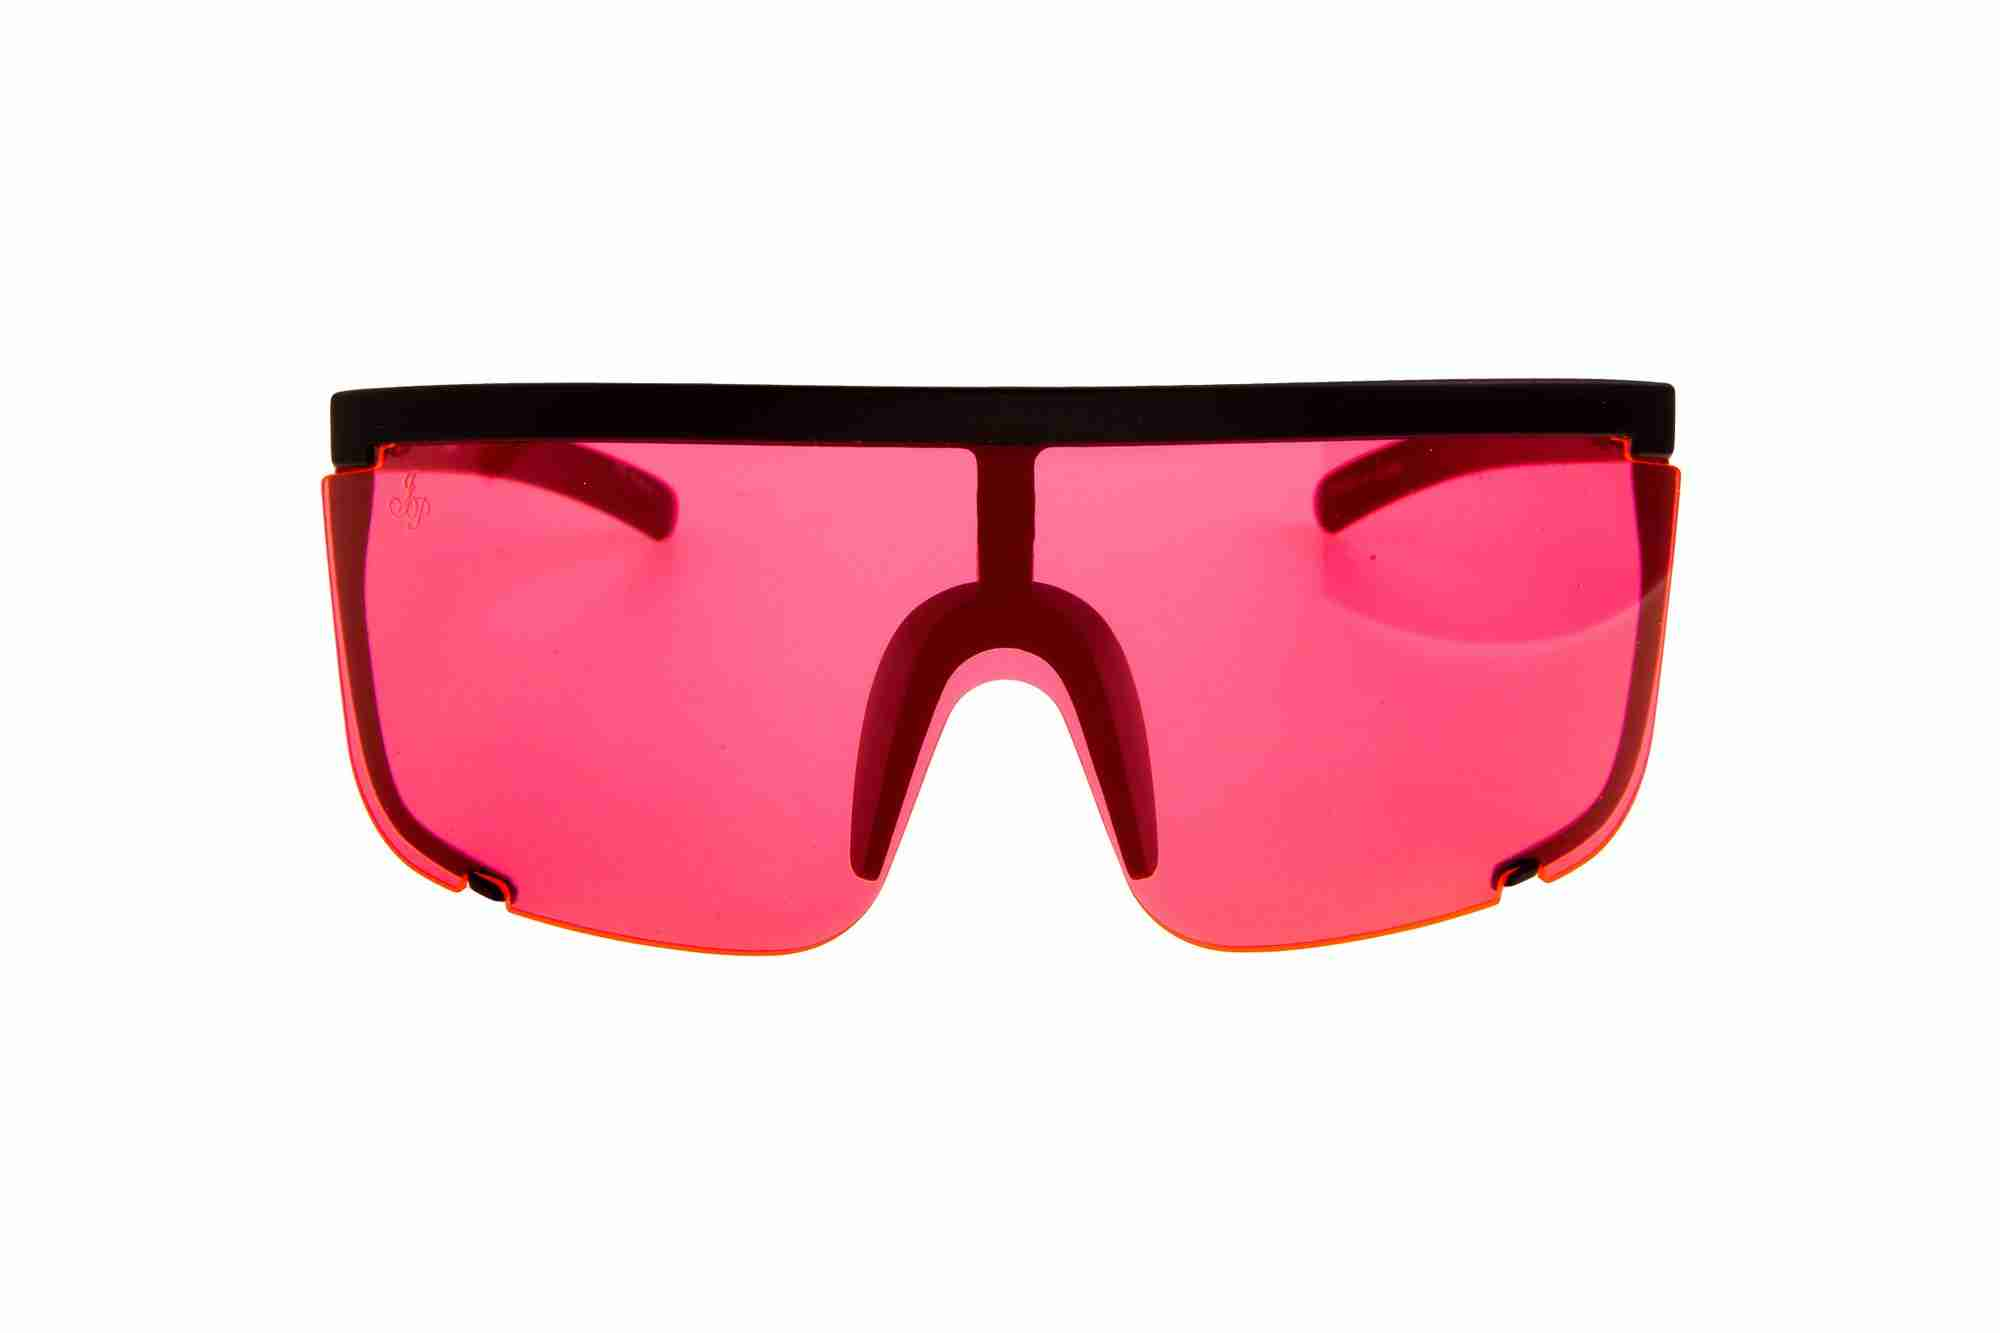 SHEILD STYLE WITH PINK LENSES